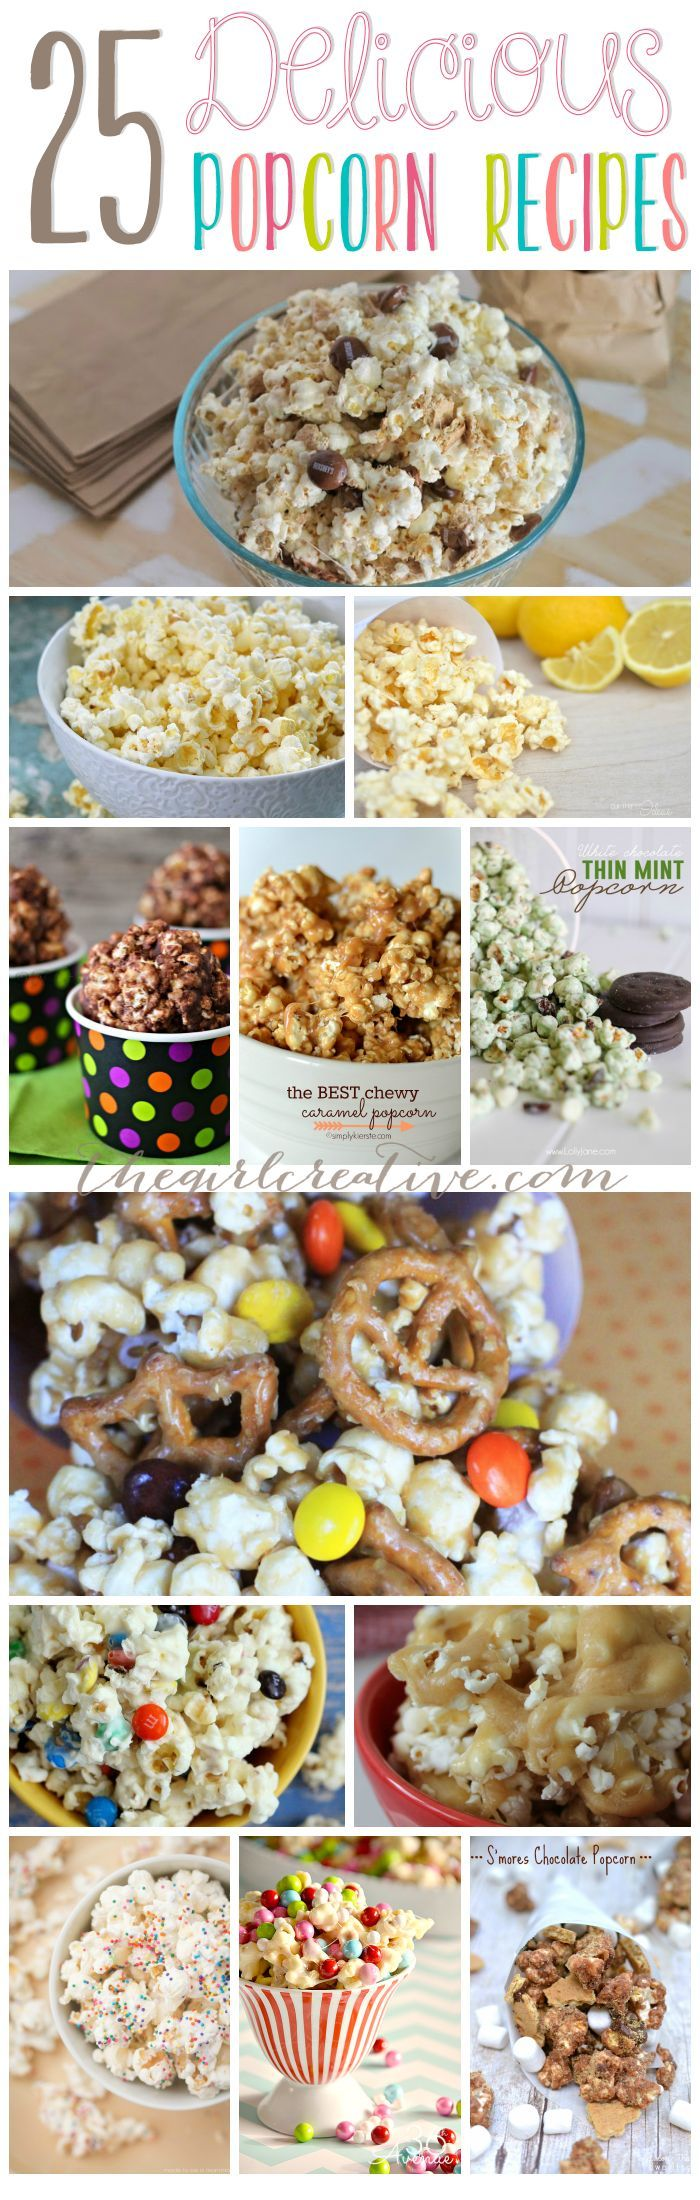 Delicious popcorn recipes | Salty and Sweet popcorn recipes.